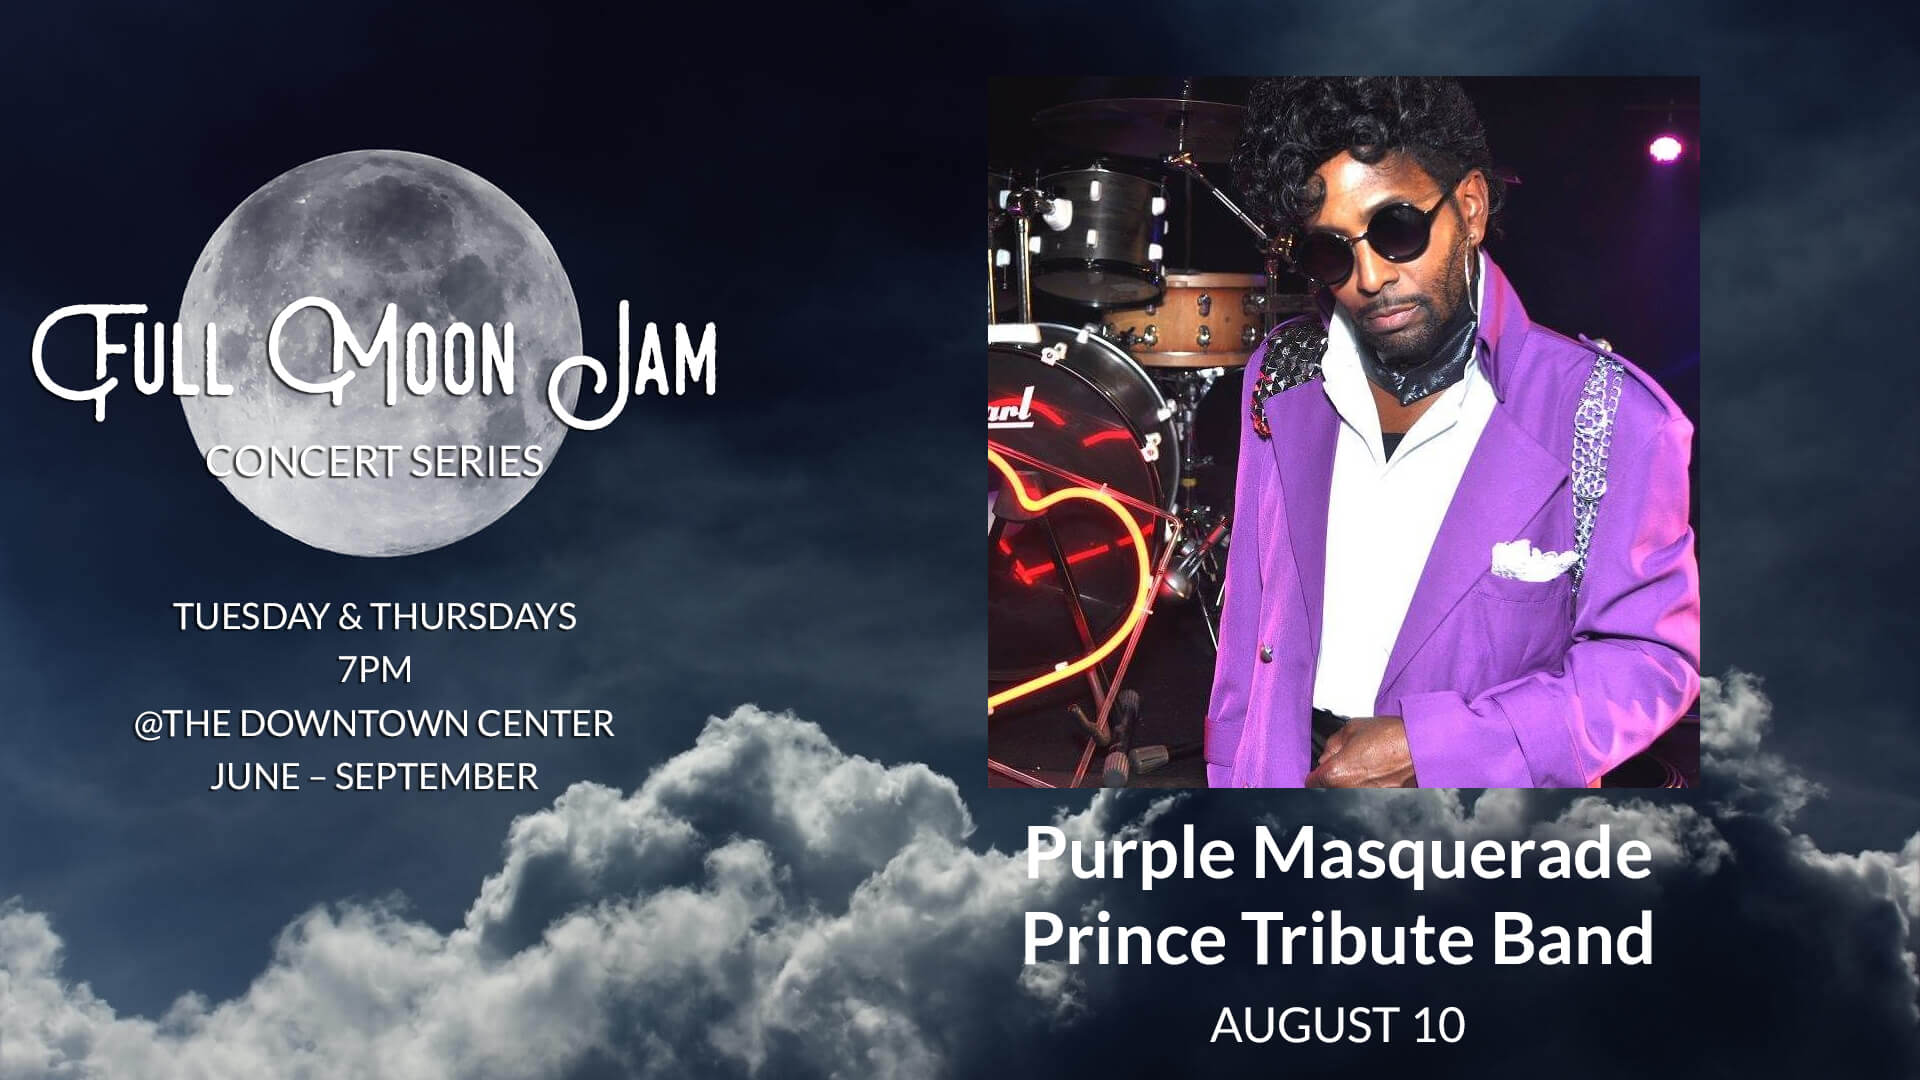 Full Moon Jam: Purple Masquerade Prince Tribute Band at Downtown